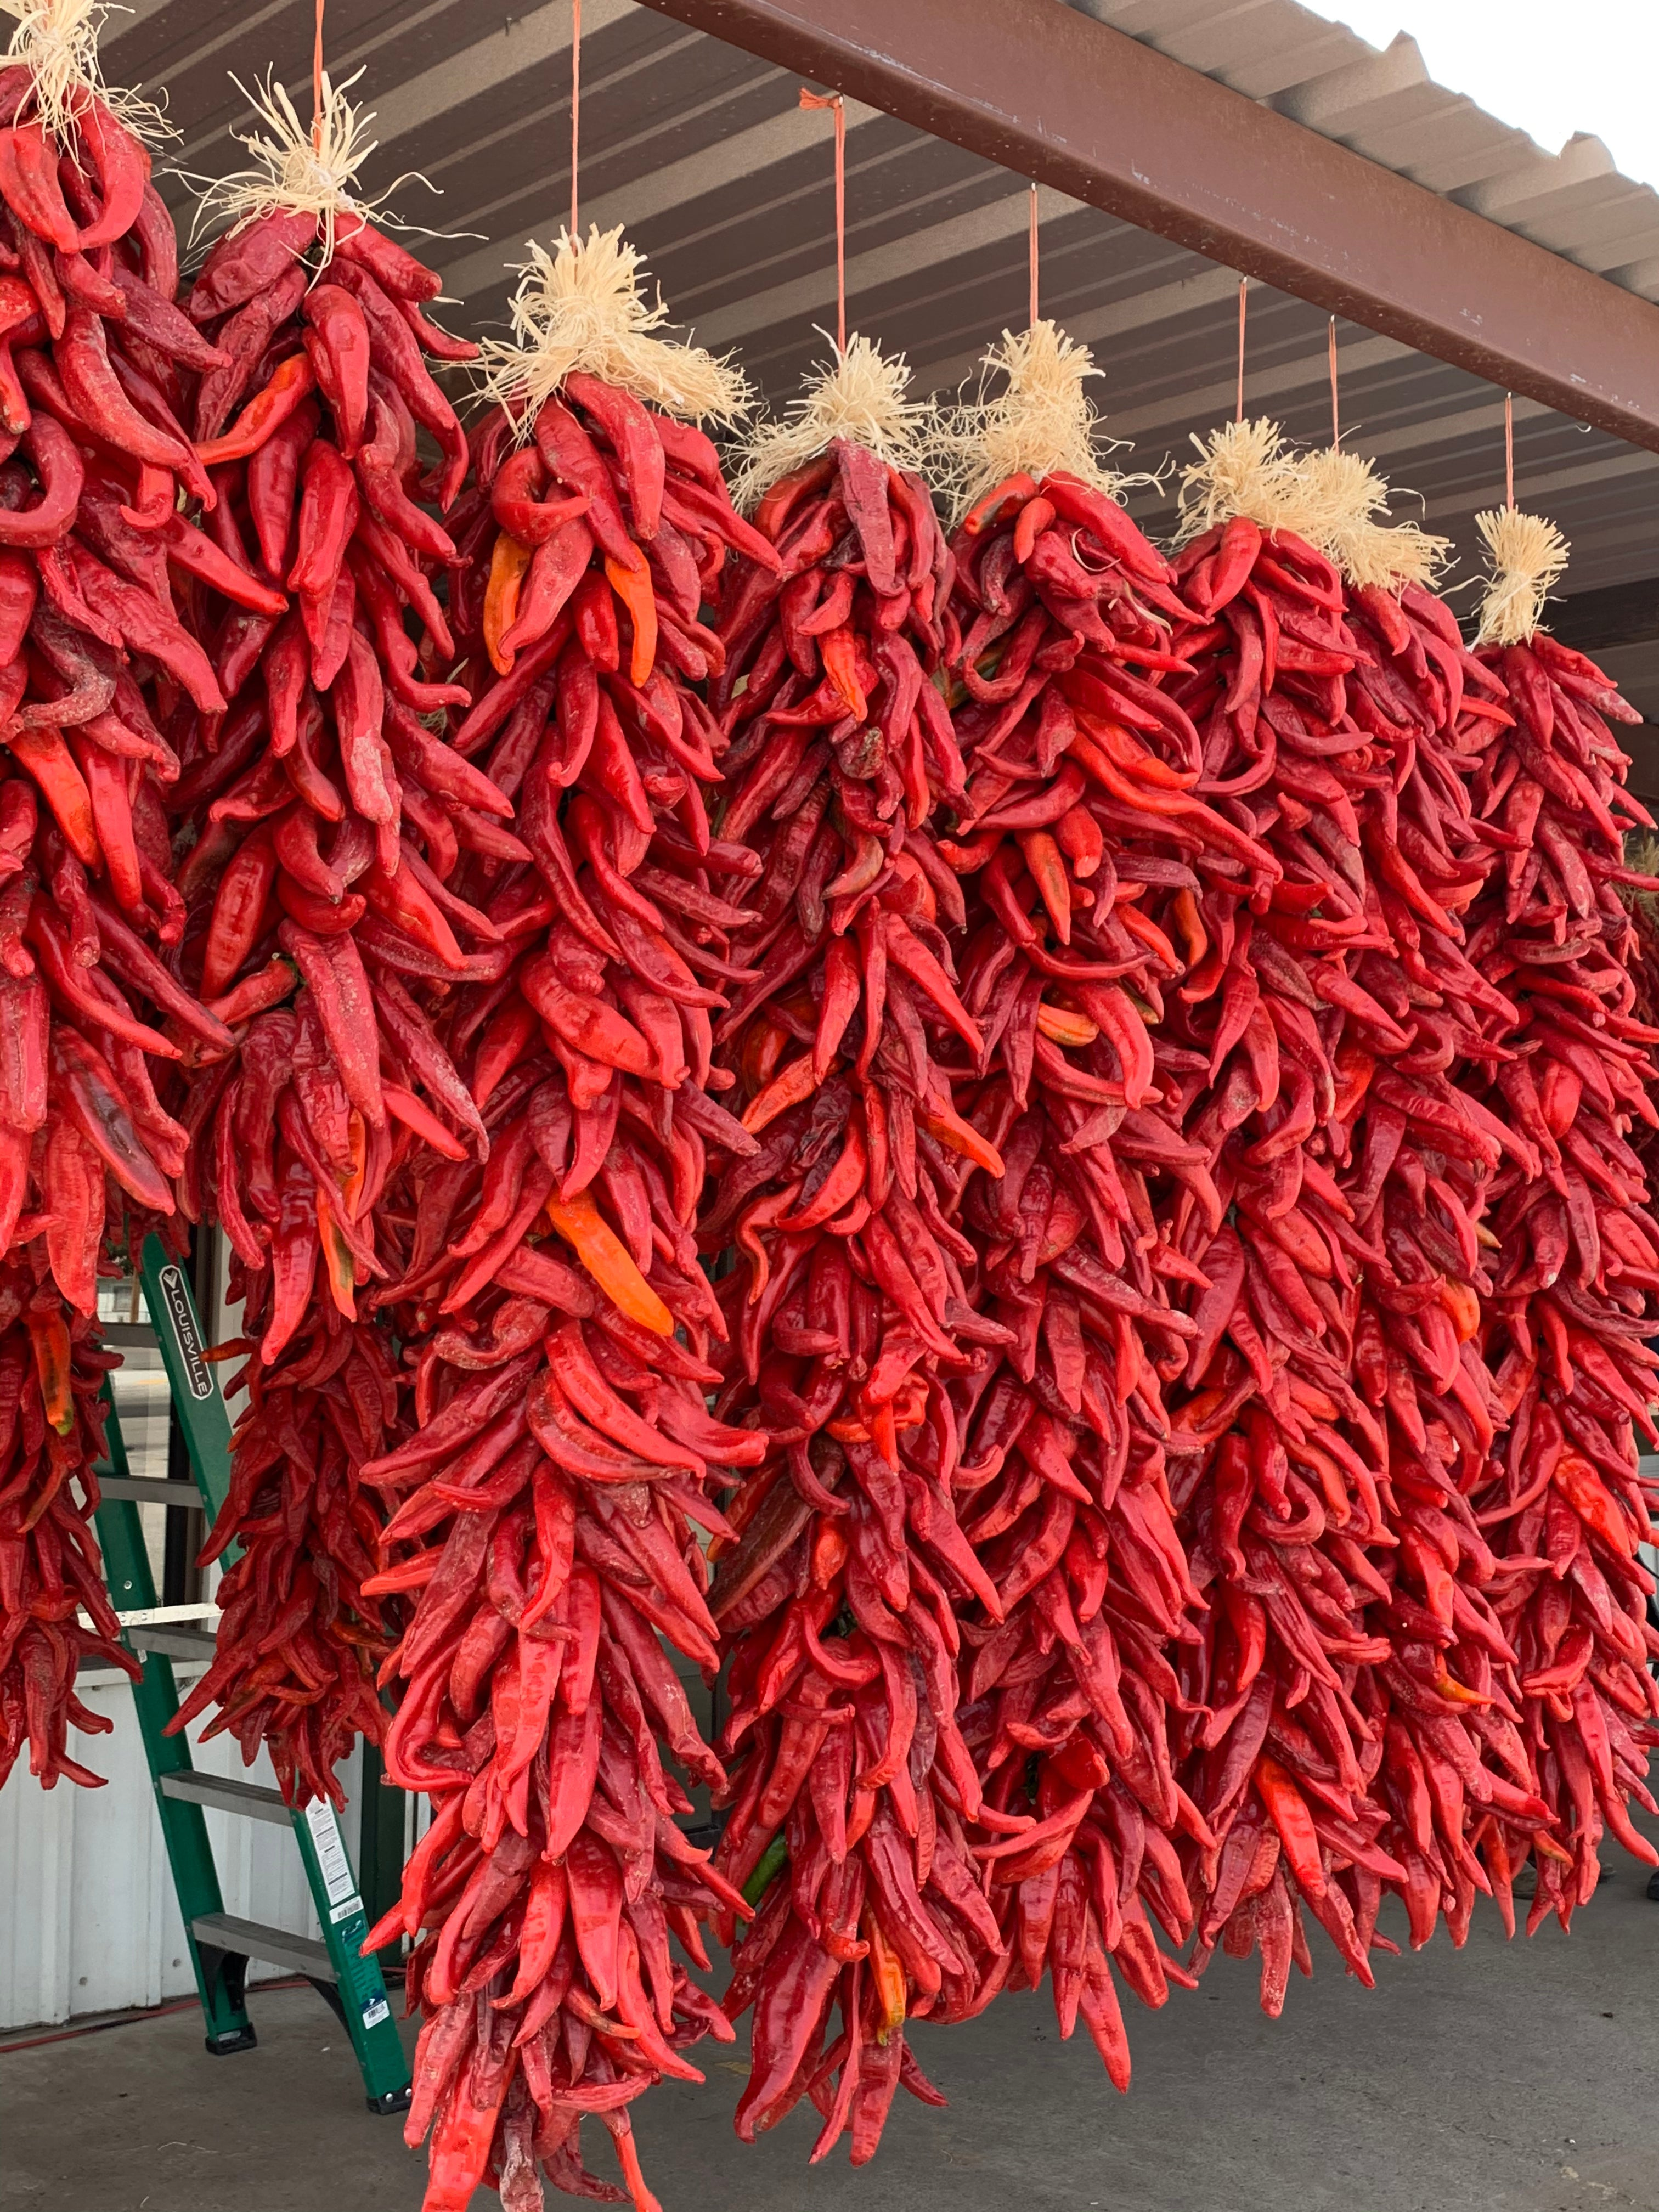 Dried Red Chile Pods - Ristras